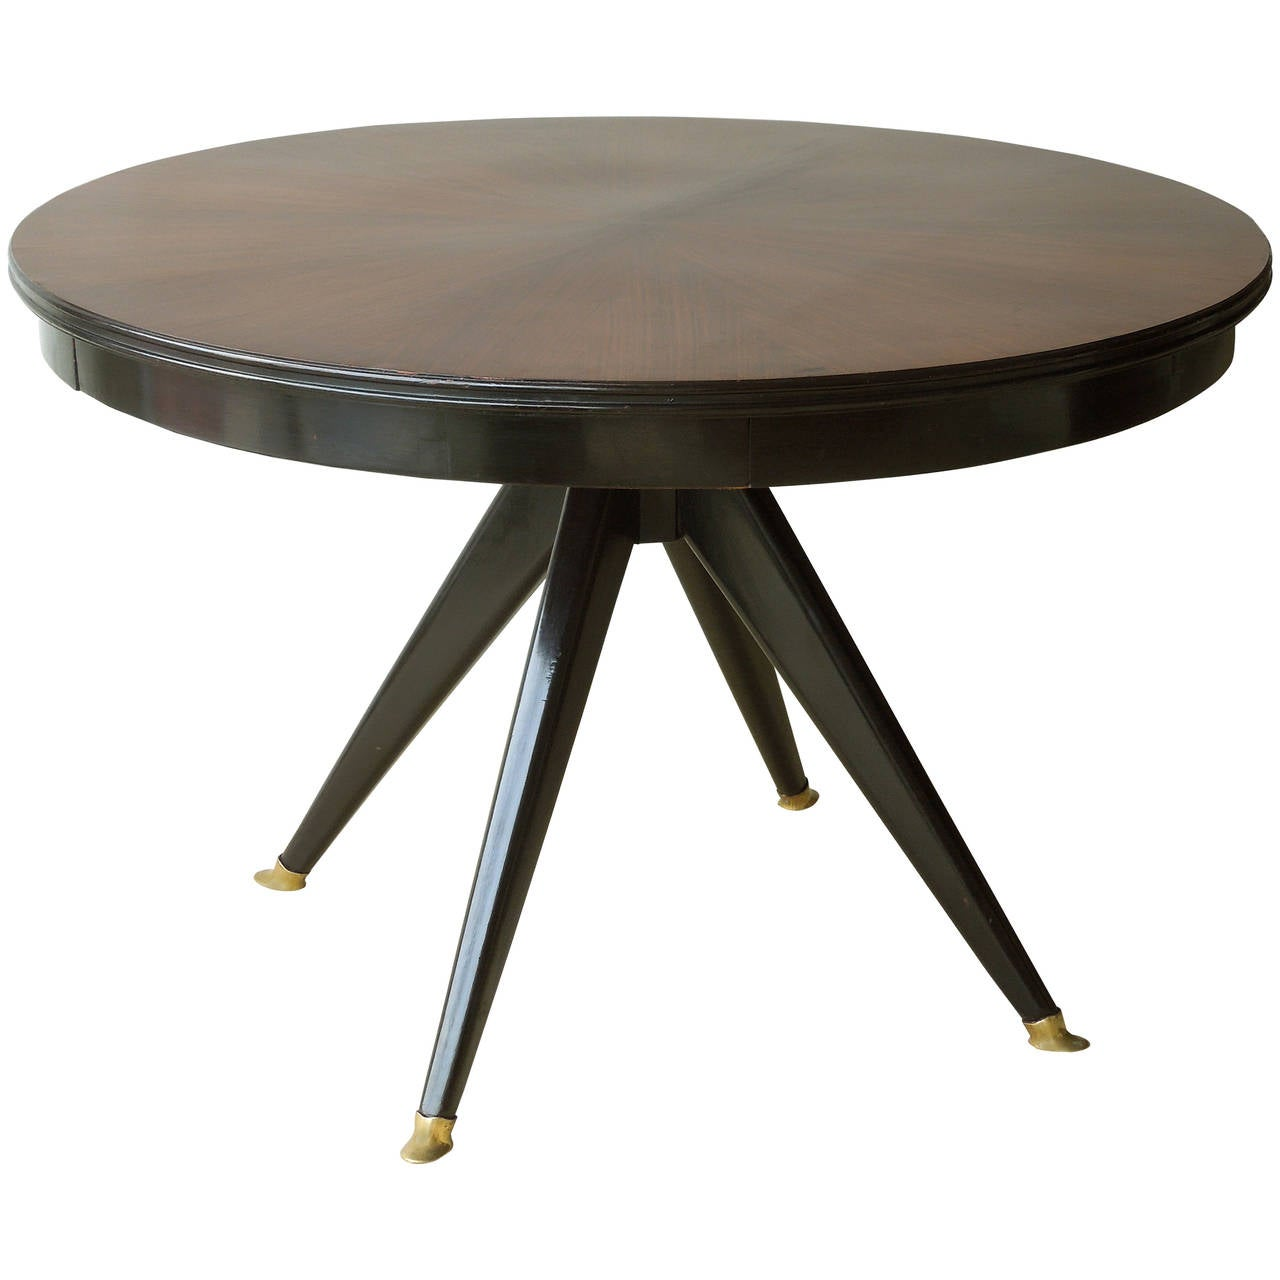 Mid century modern round center dining table at 1stdibs for Mid century modern dining table